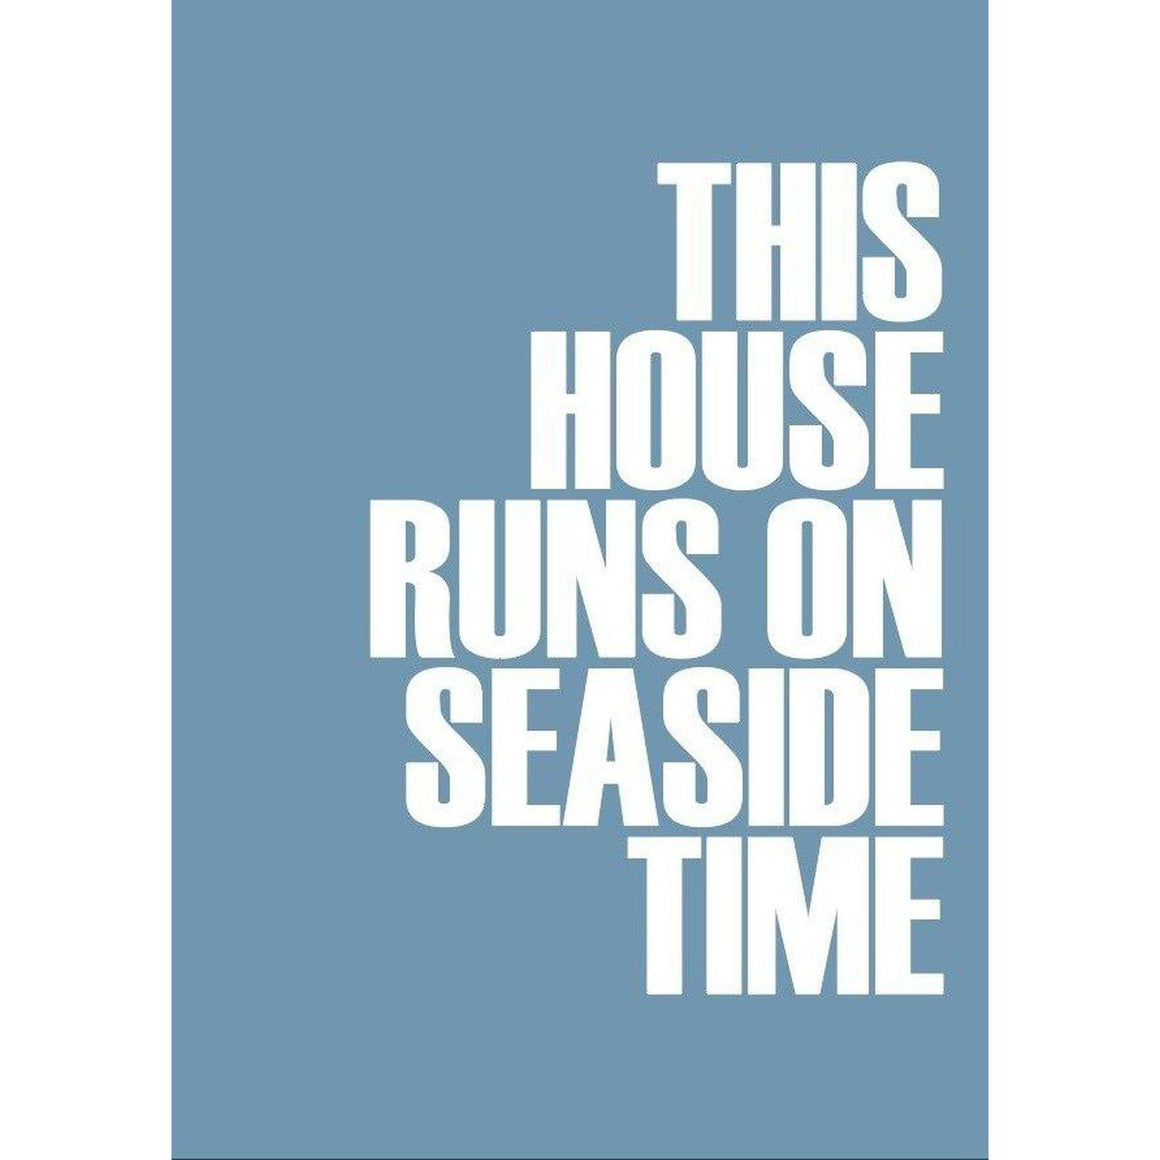 Seaside Time Typographic Travel and Seaside Print by SeaKisses